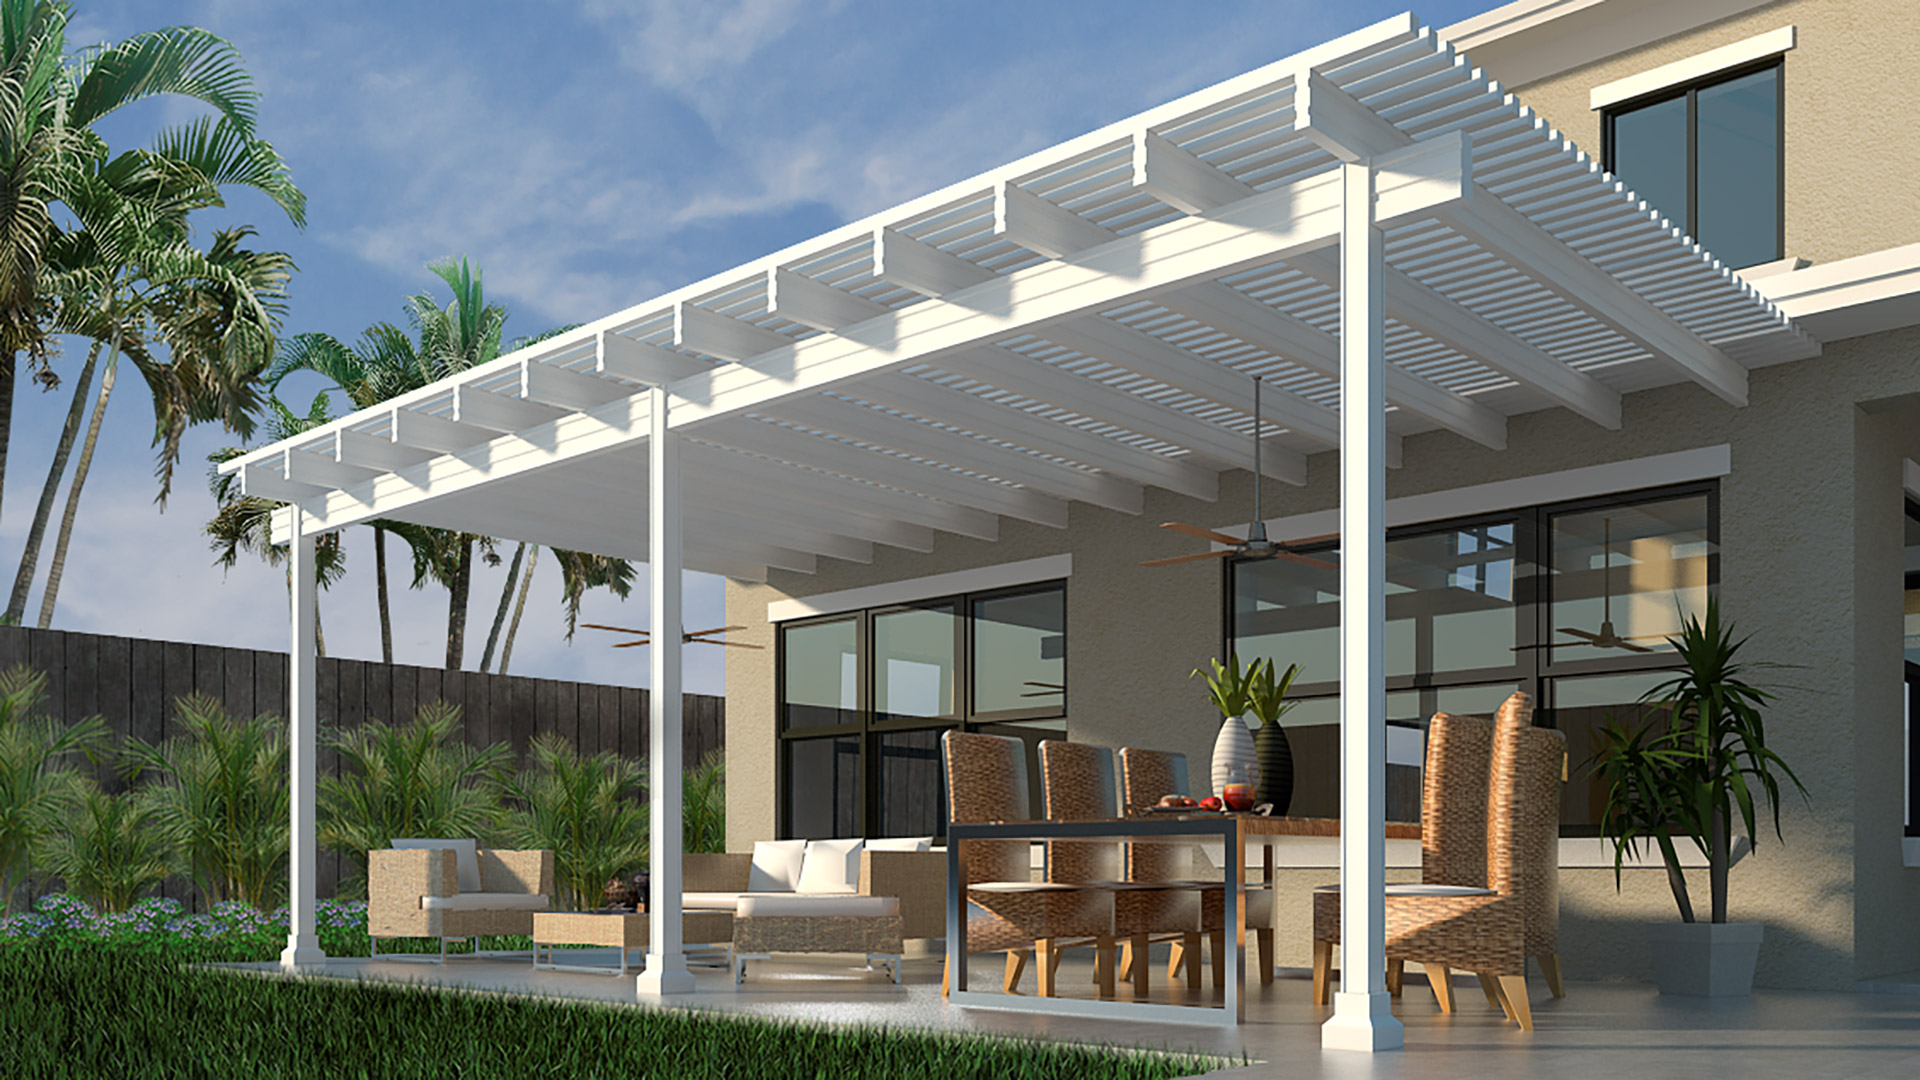 Will an Aluminum Pergola Blend Well With My Florida Landscape?